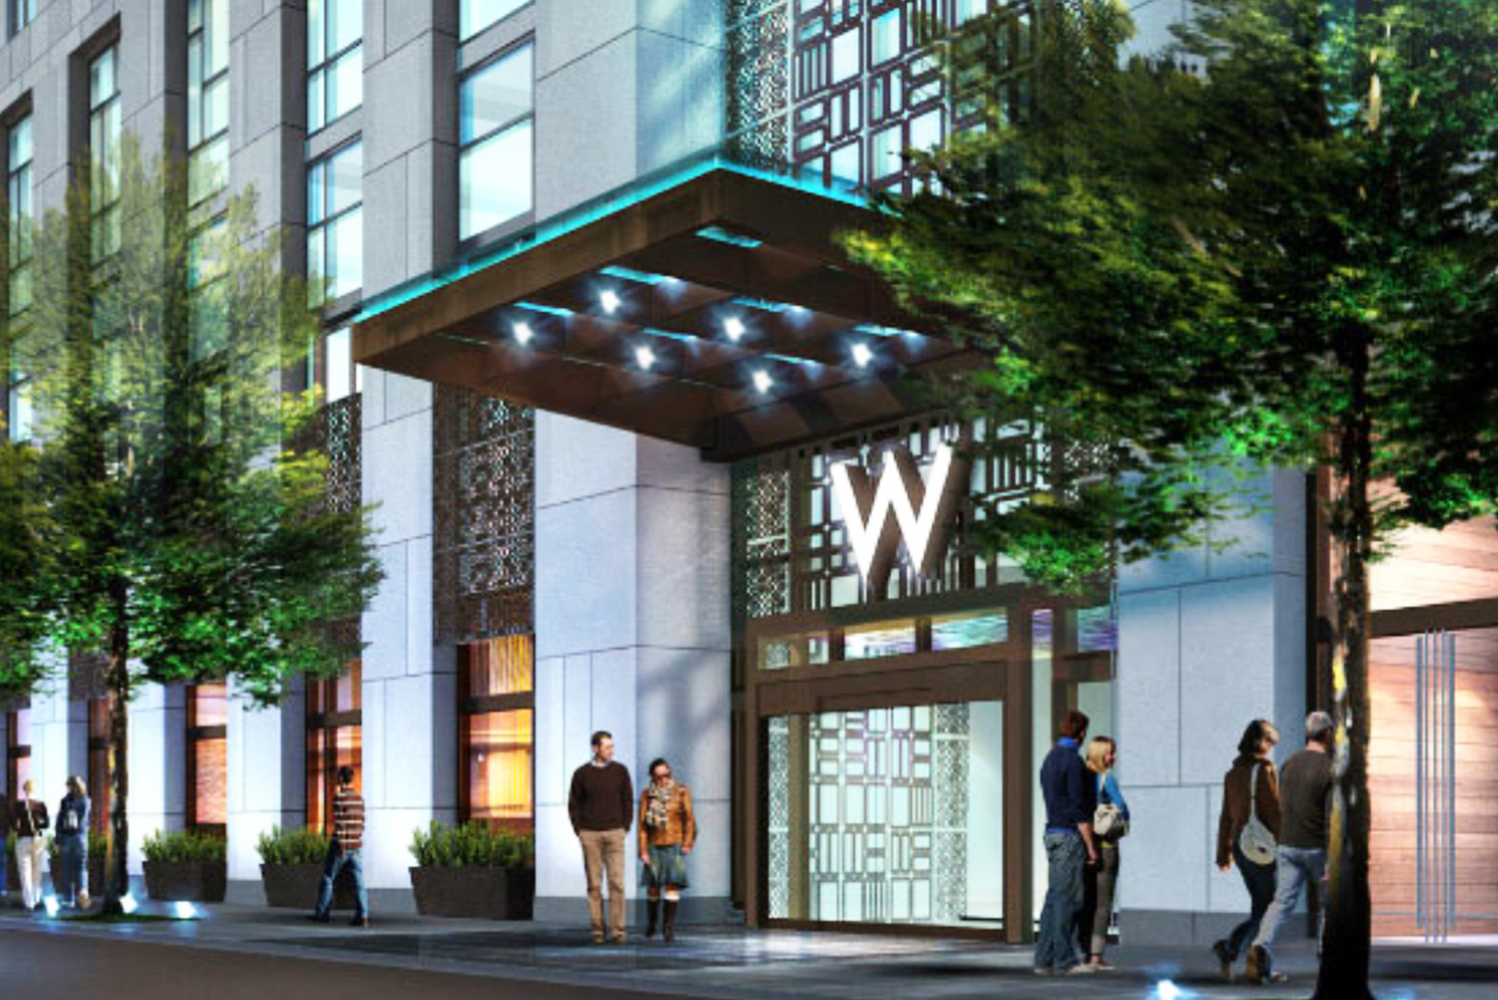 The W Philadelphia and Element Philadelphia Hotel are two distinctive brands designed within a single tower.